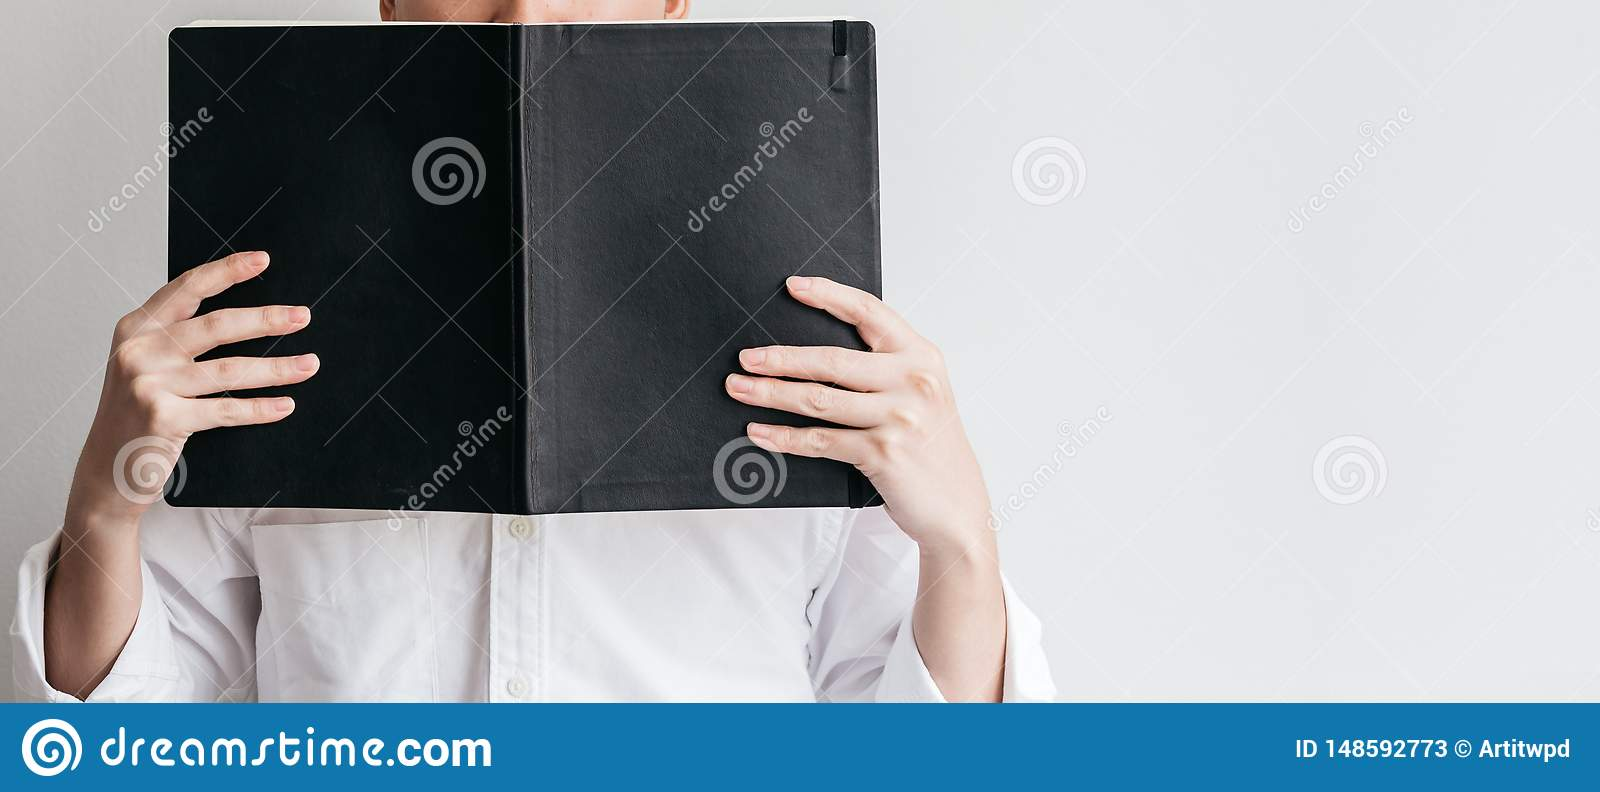 Man wearing white shirt and holding a black cover book in front of him on the left side with copy space